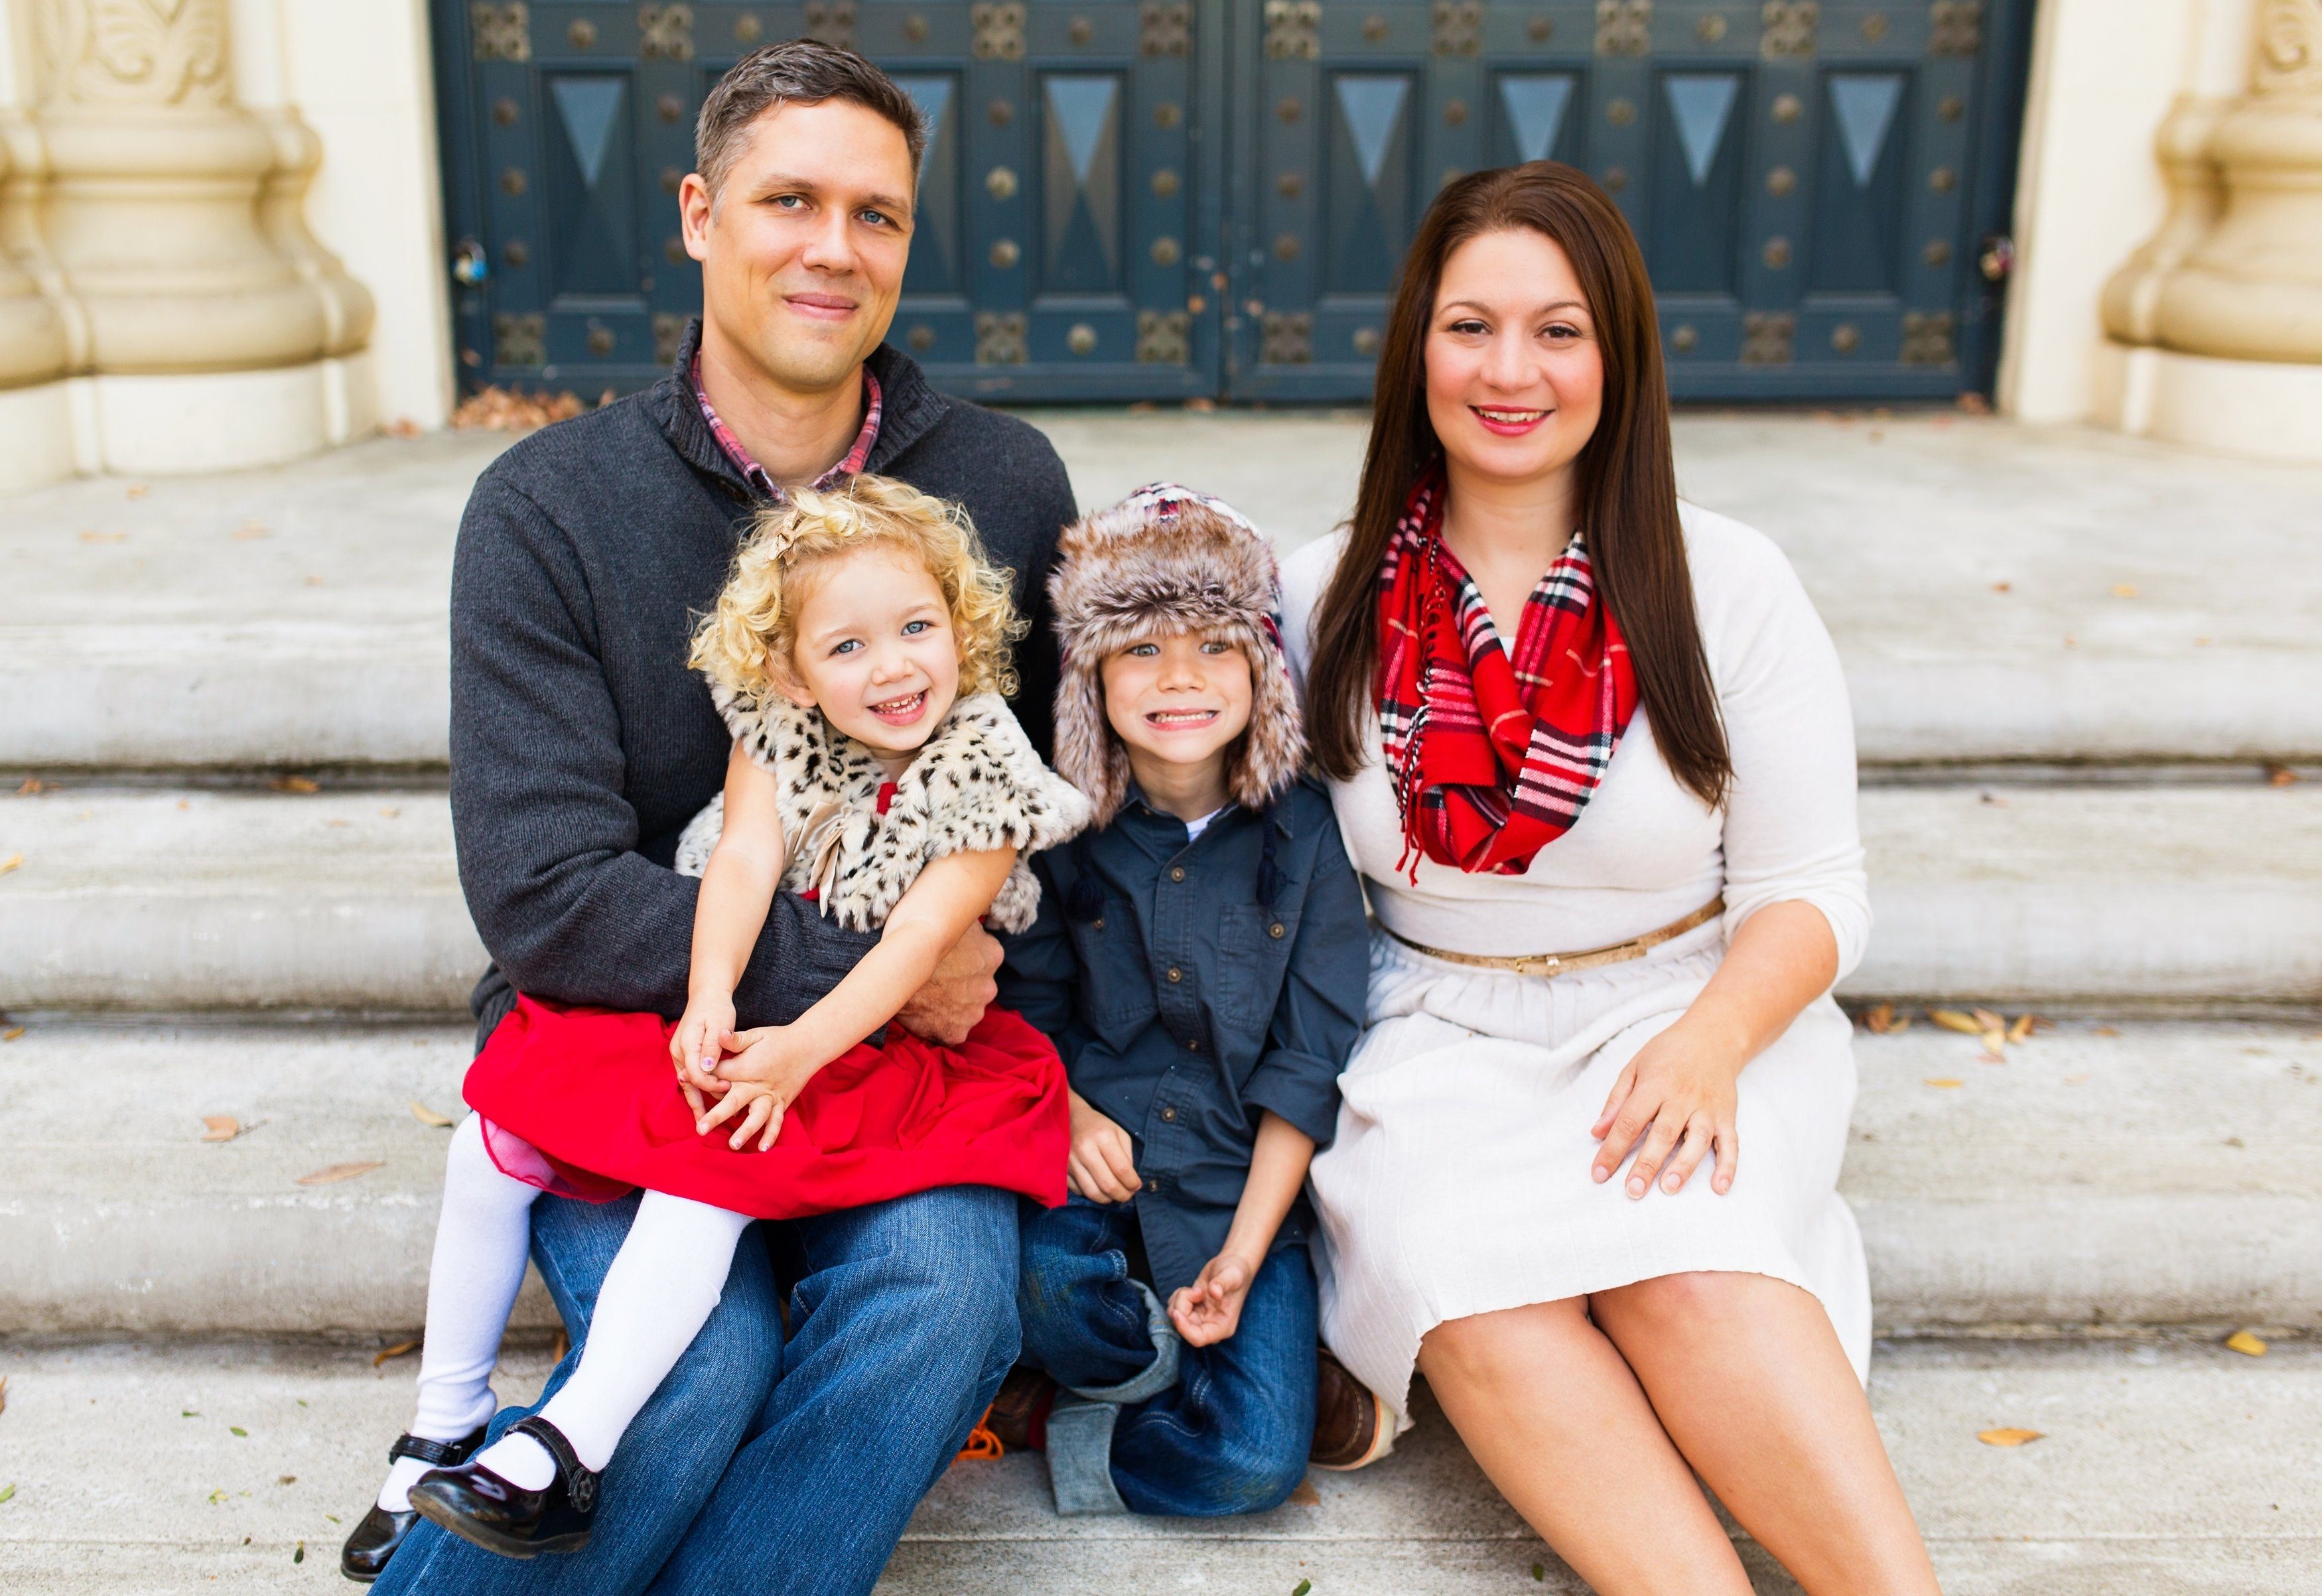 10 Cute Cute Christmas Family Photo Ideas christmas ideas tierra este 55043 2